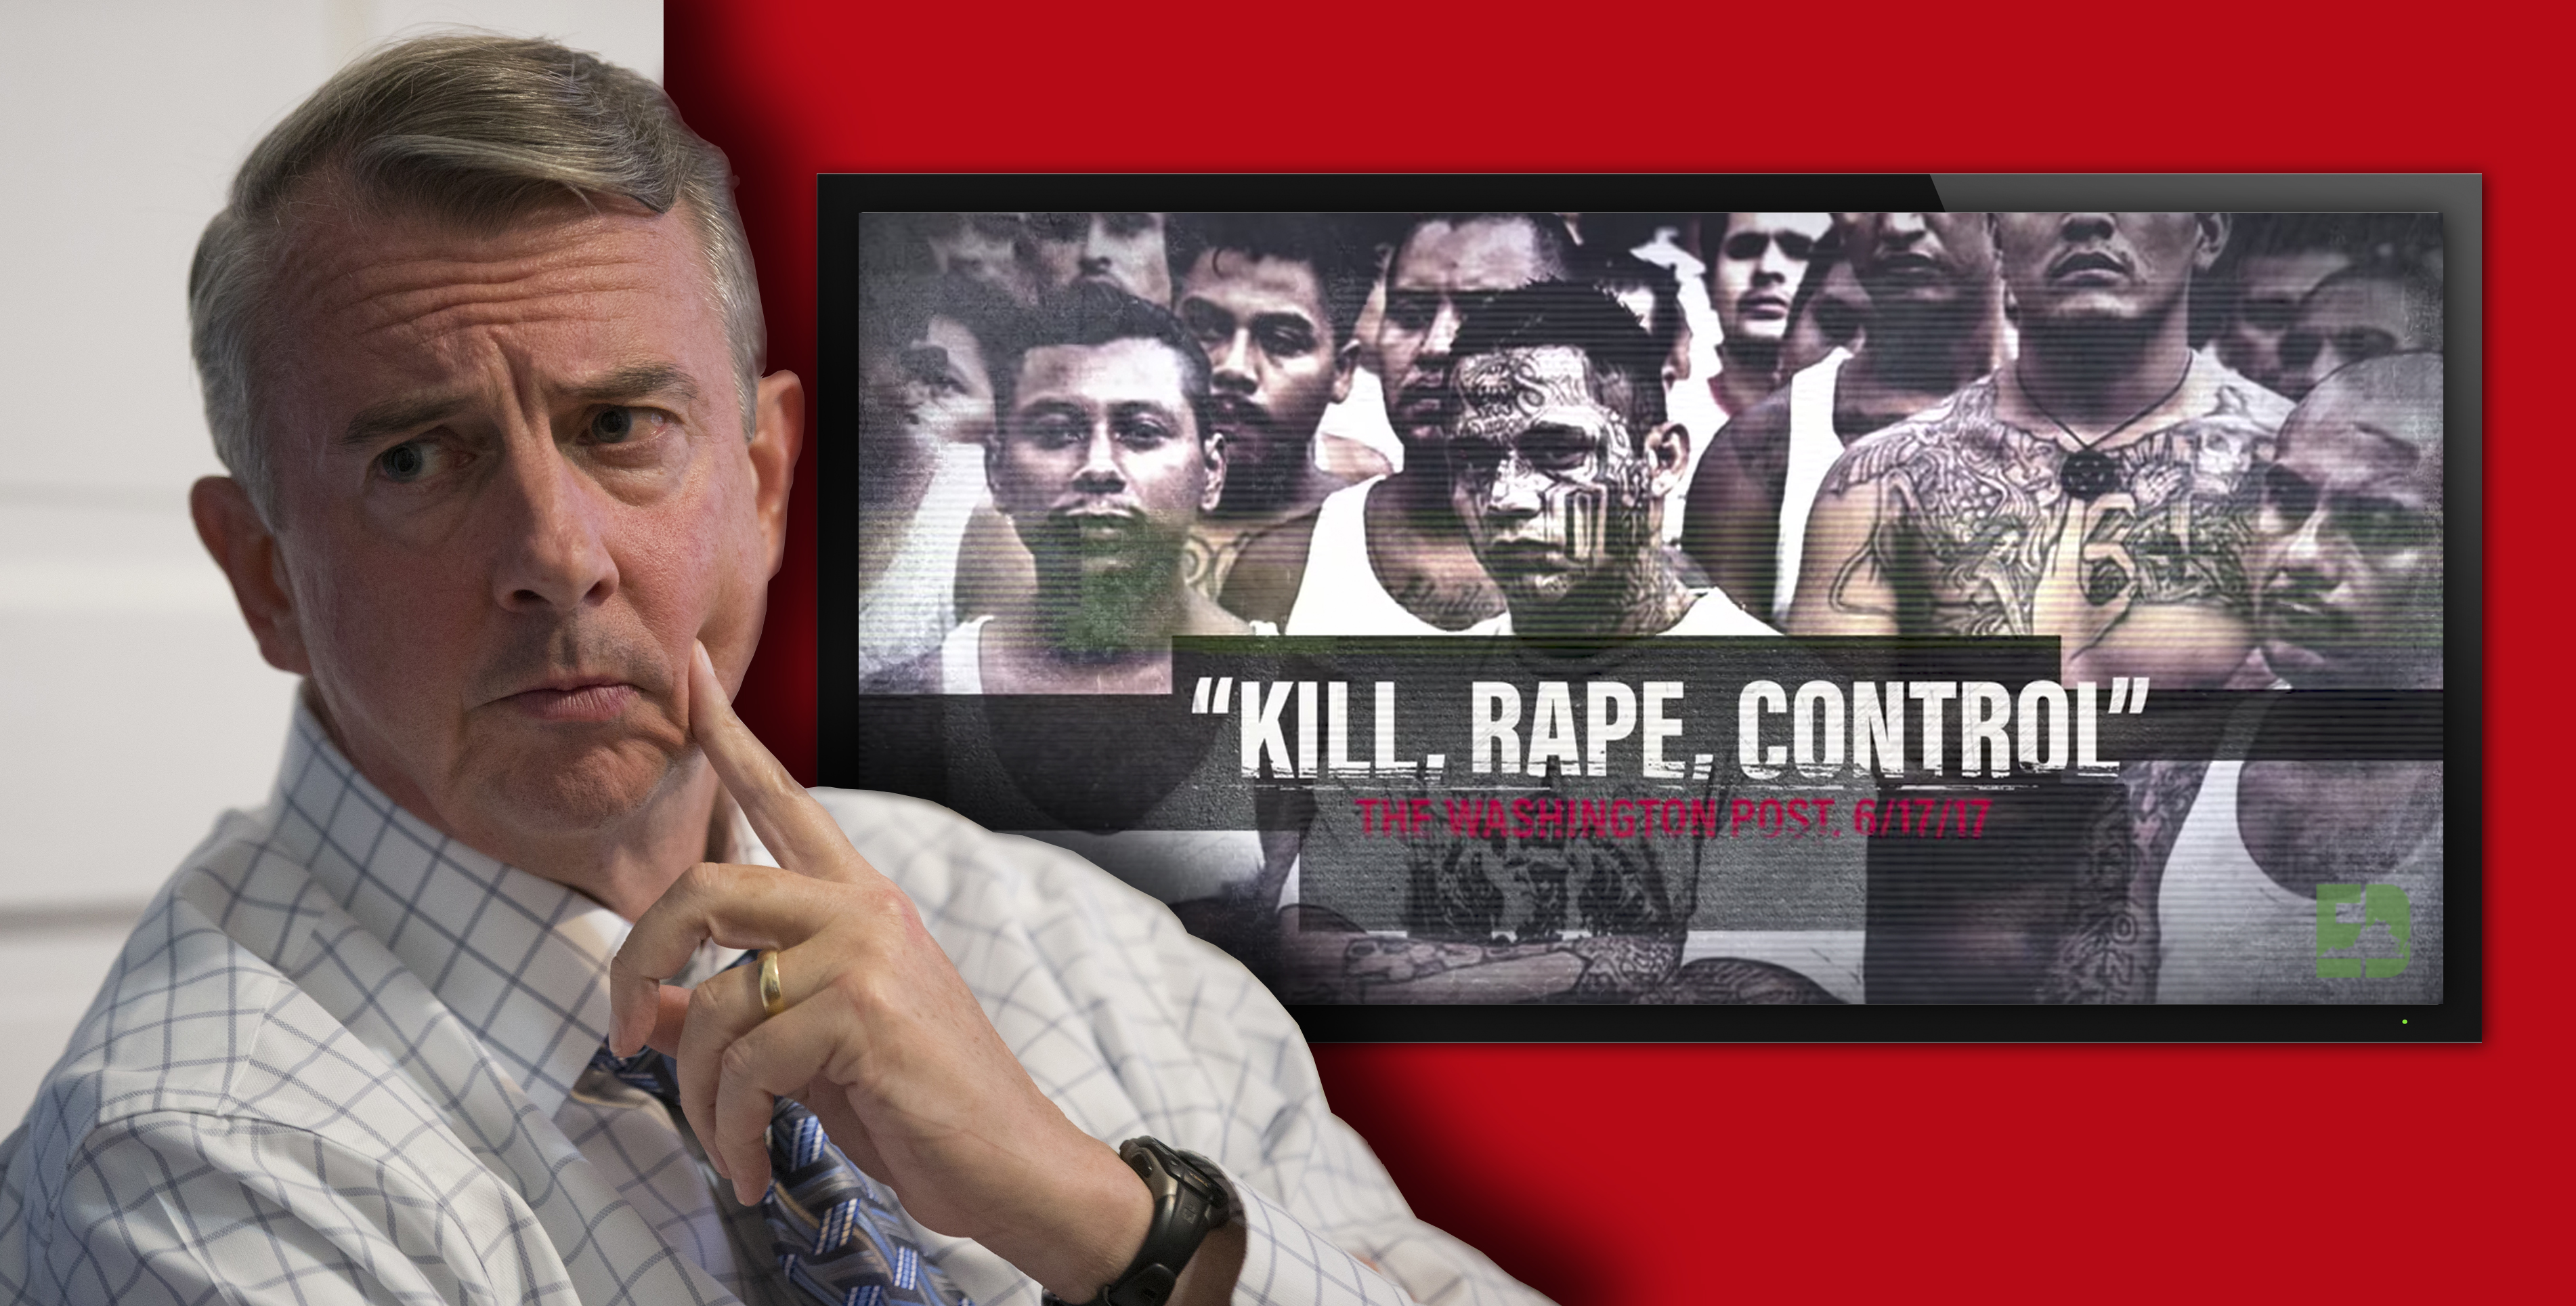 Ed Gillespie's scaremongering TV ads may define his campaign